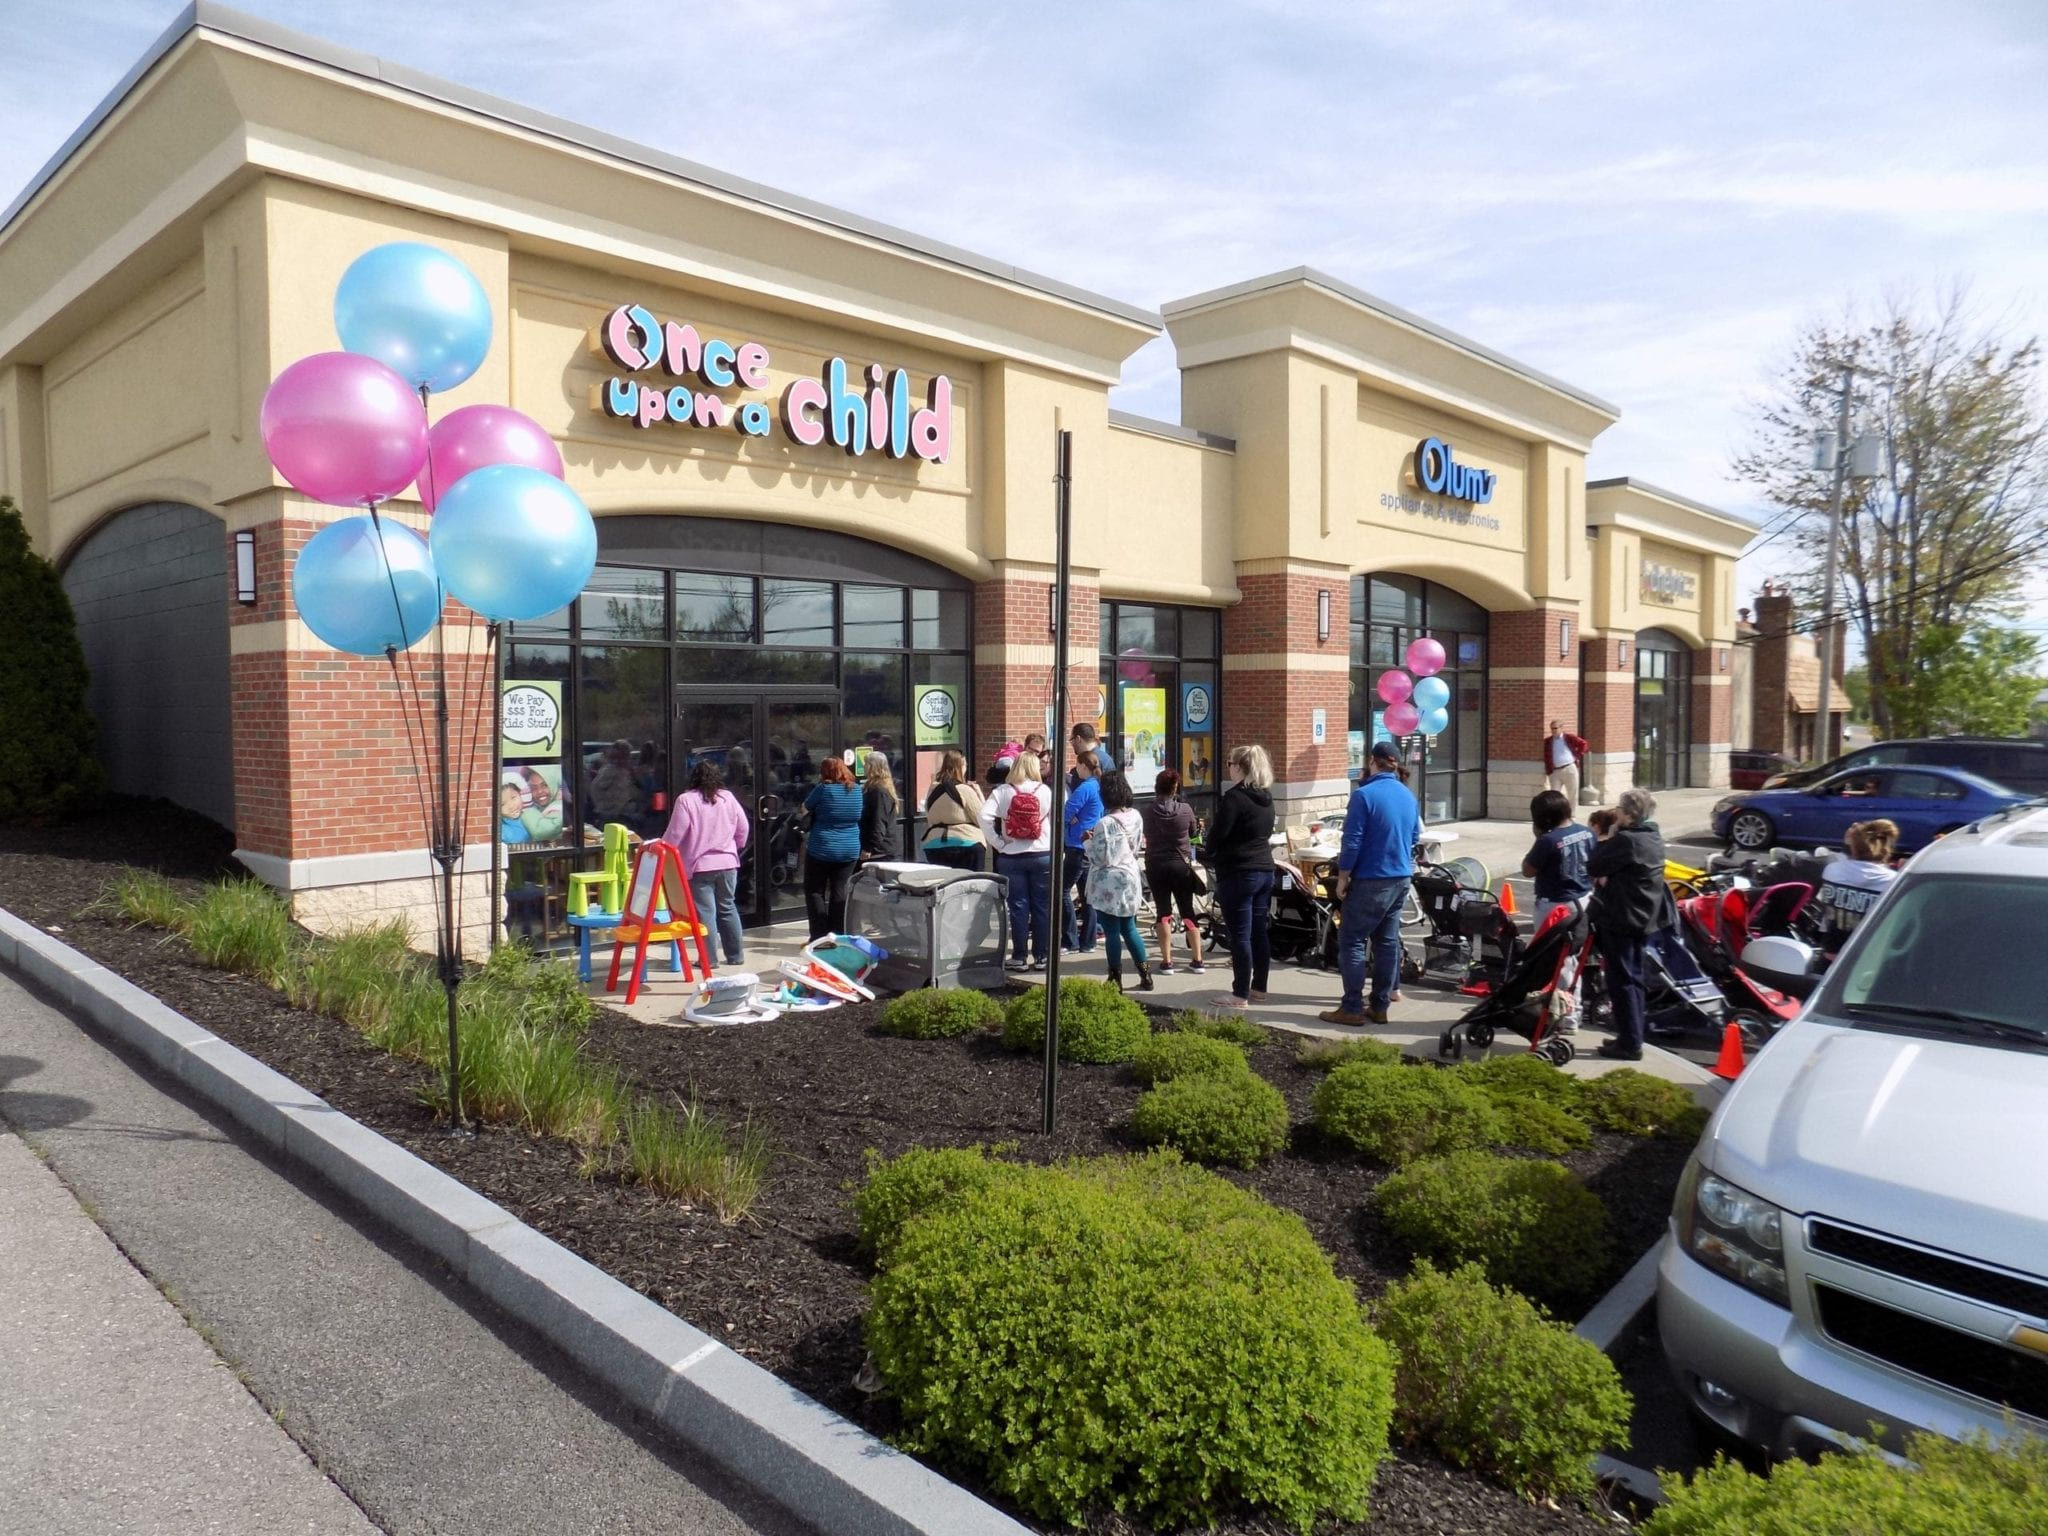 Eagle News Online Once Upon A Child Store Opens On Bridge Street In East Syracuse